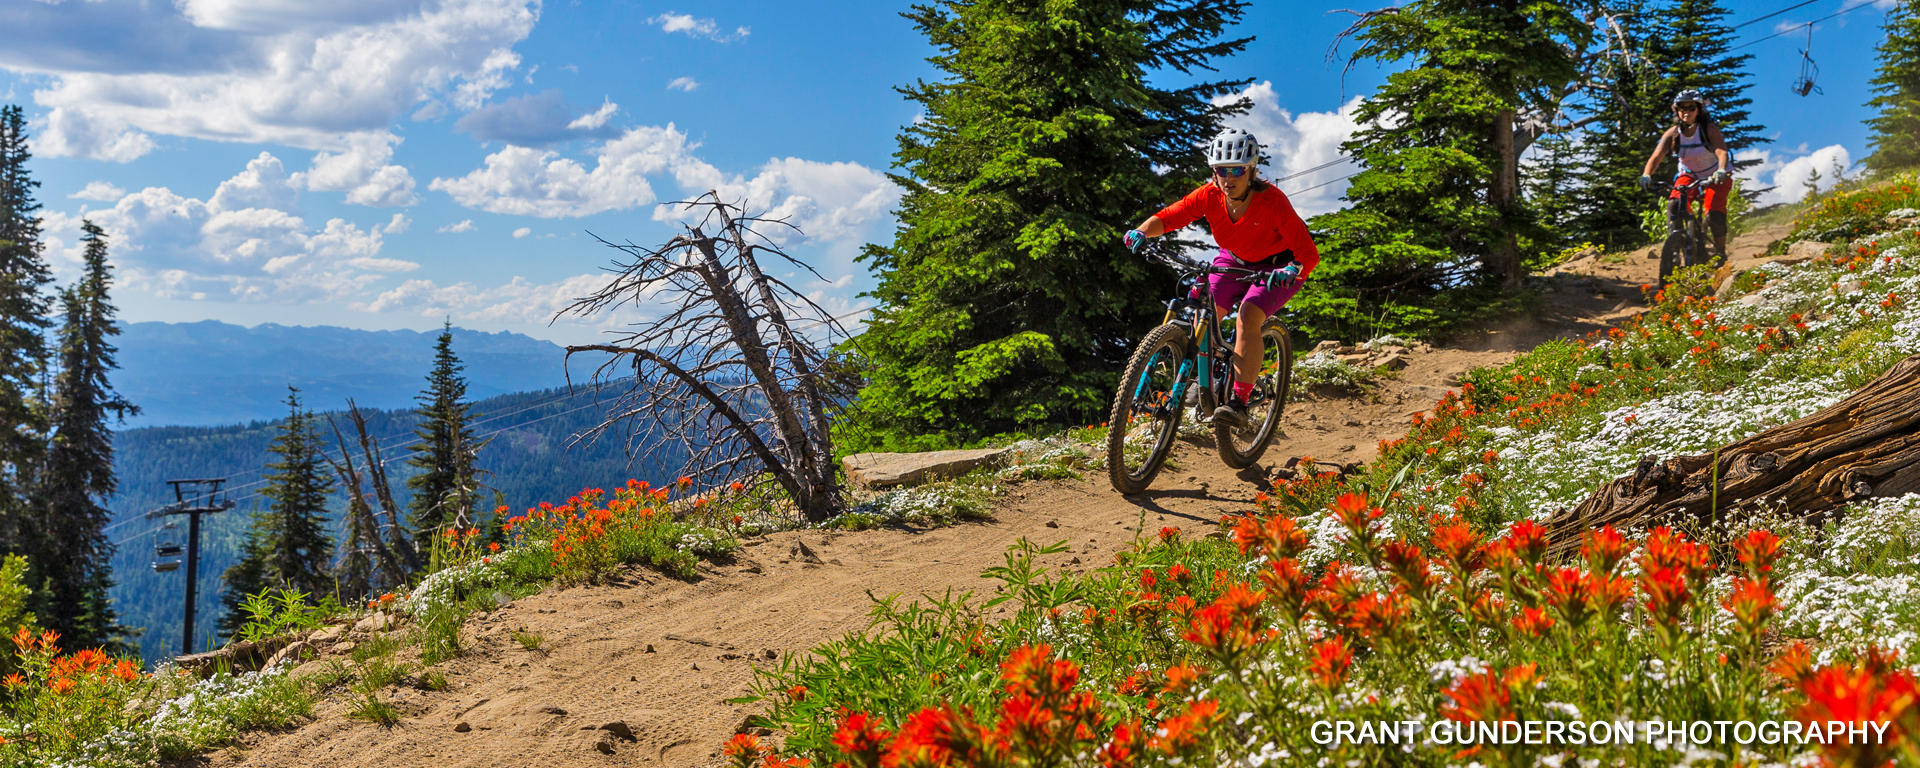 [satisfy]Brundage Bike Park[/satisfy] NOW OPEN